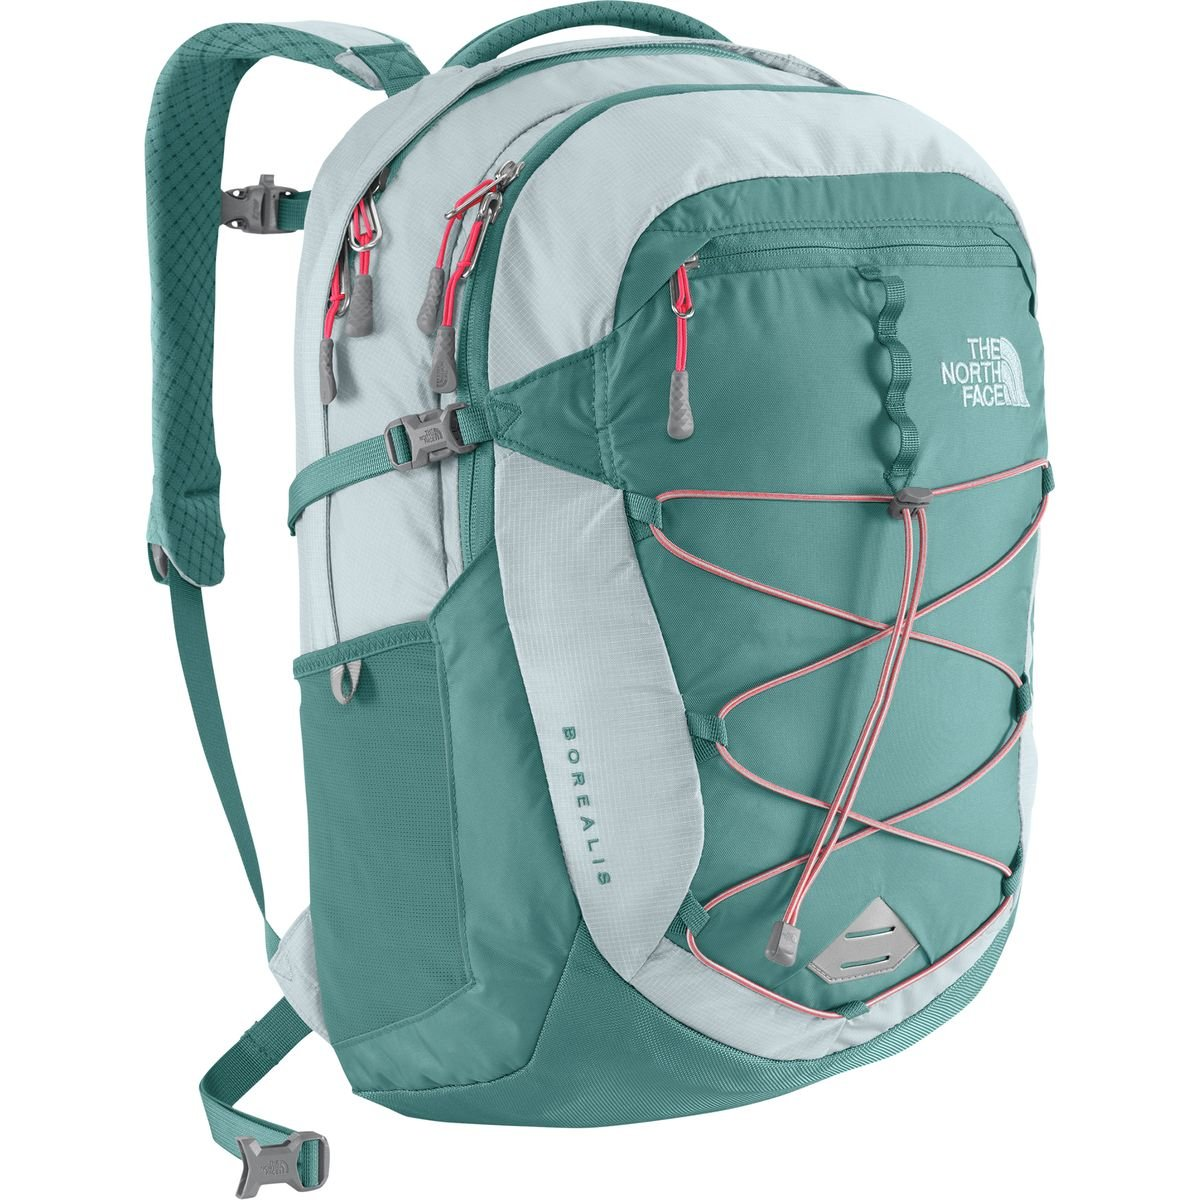 The North Face Women's Borealis Hydro Green